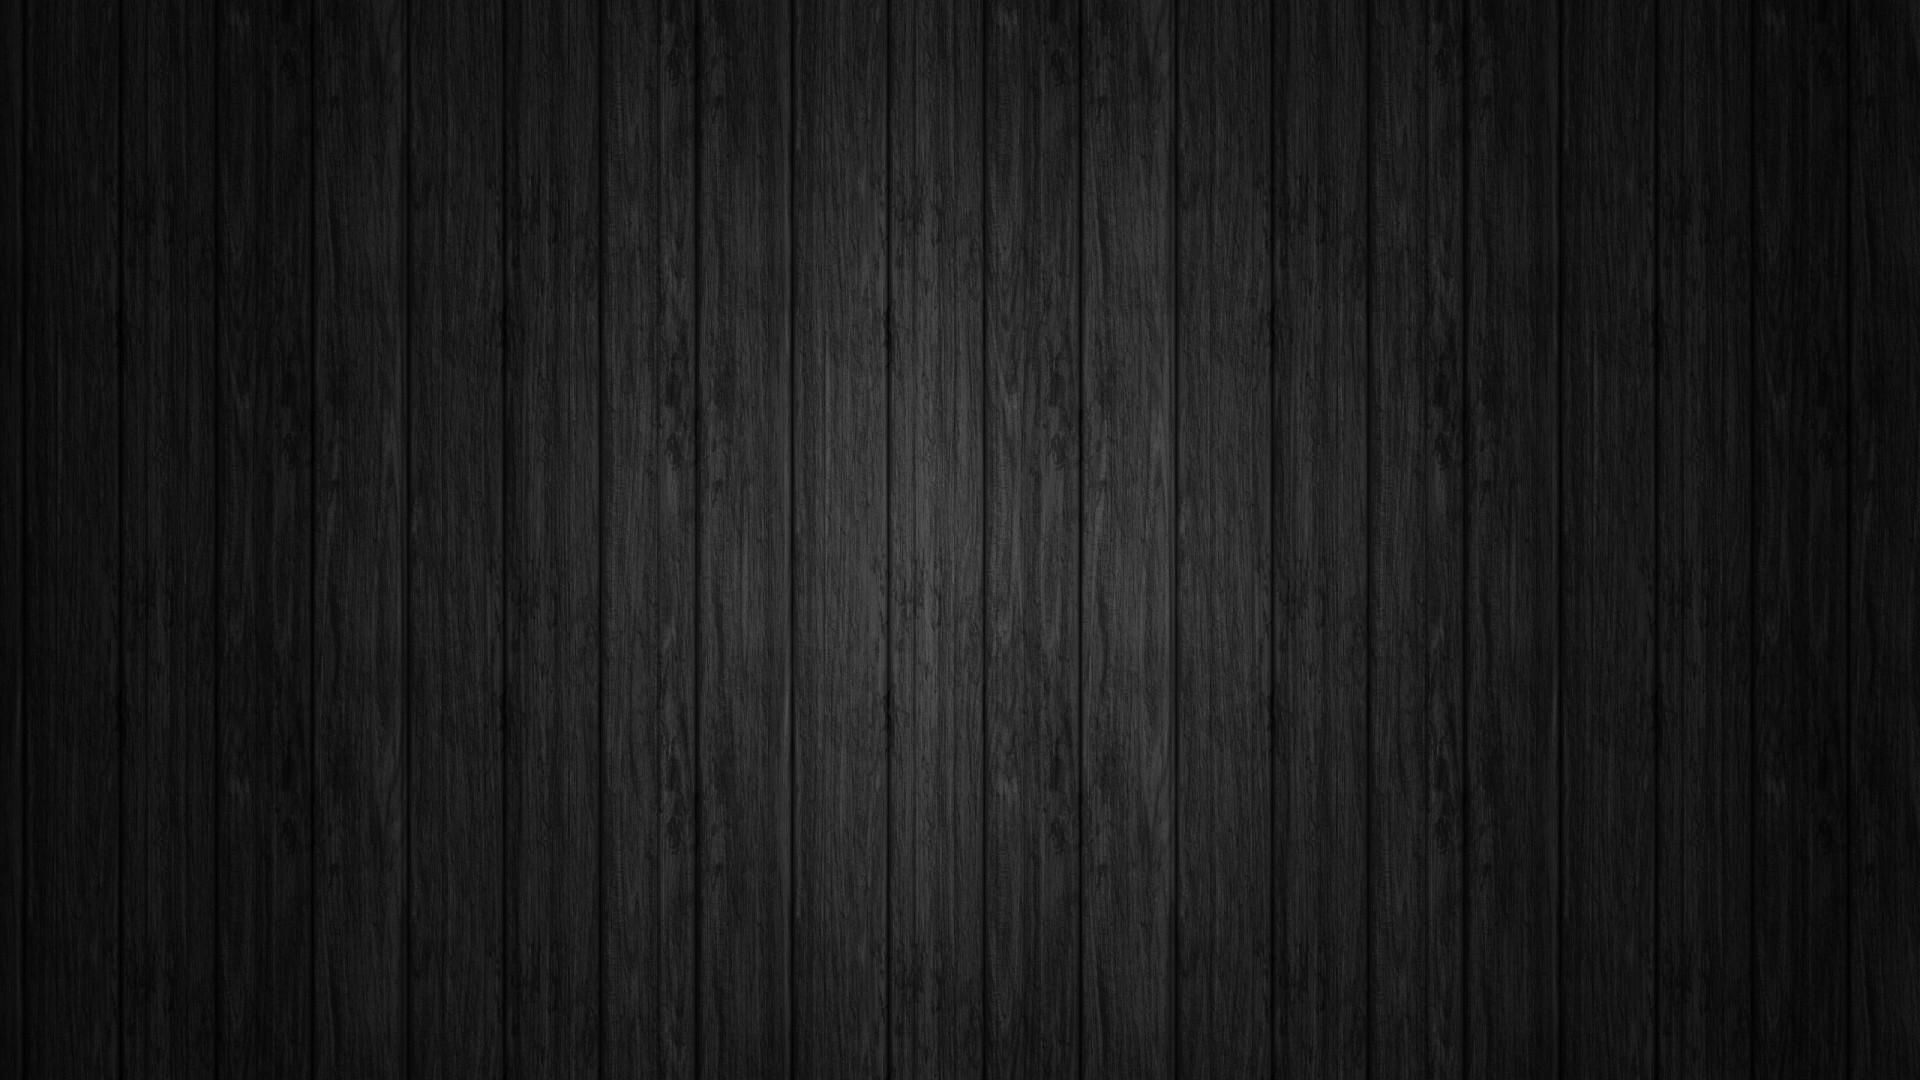 1920x1080 Preview wallpaper board, black, line, texture, background, wood